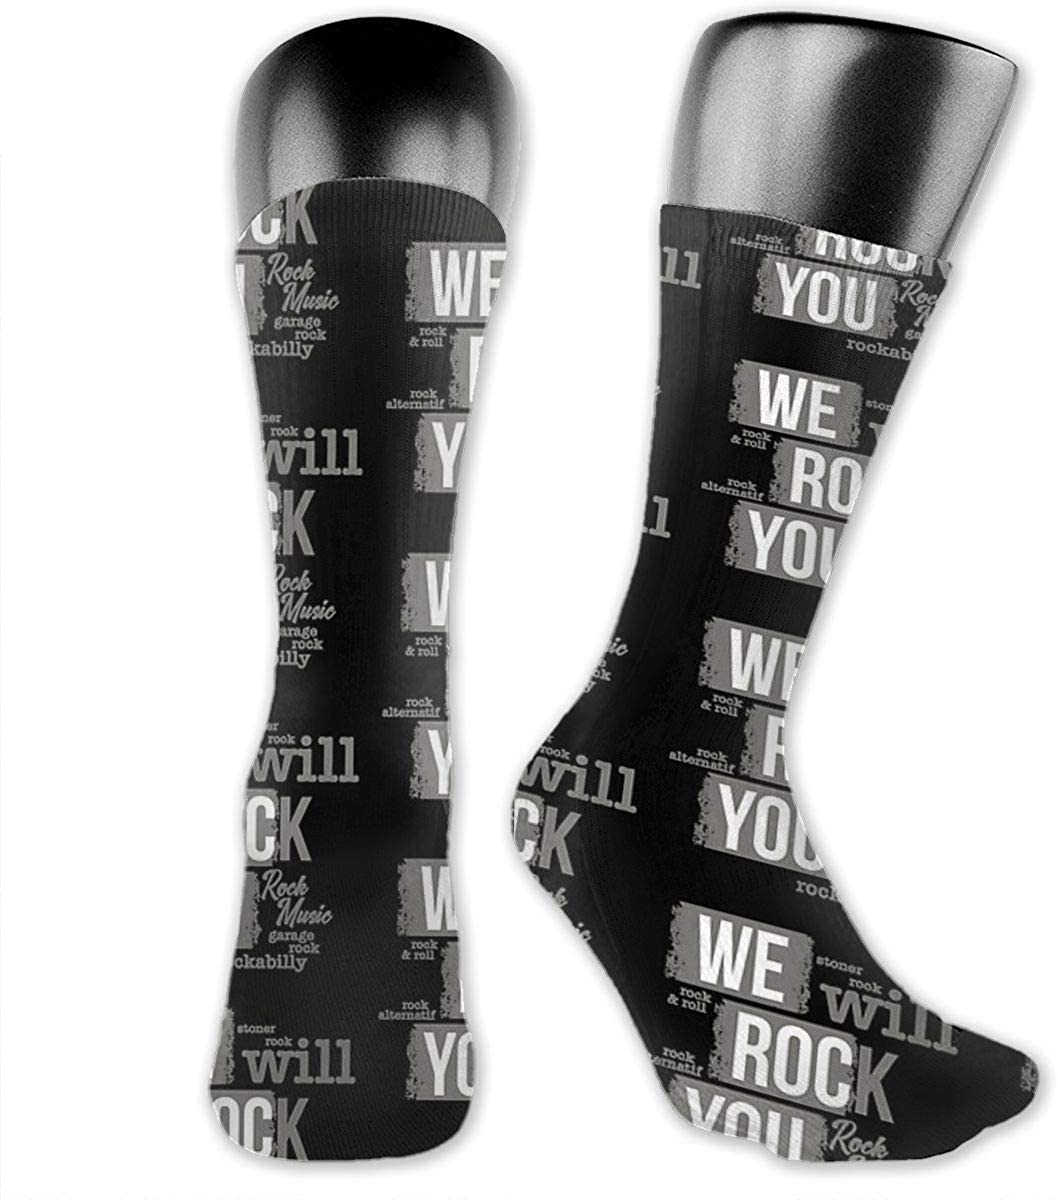 Unisex Crazy Funny Cool 3D Print We Will Rock You Vintage Rock Socks Colorful Athletic Sport Socks Novelty Casual Crew Socks